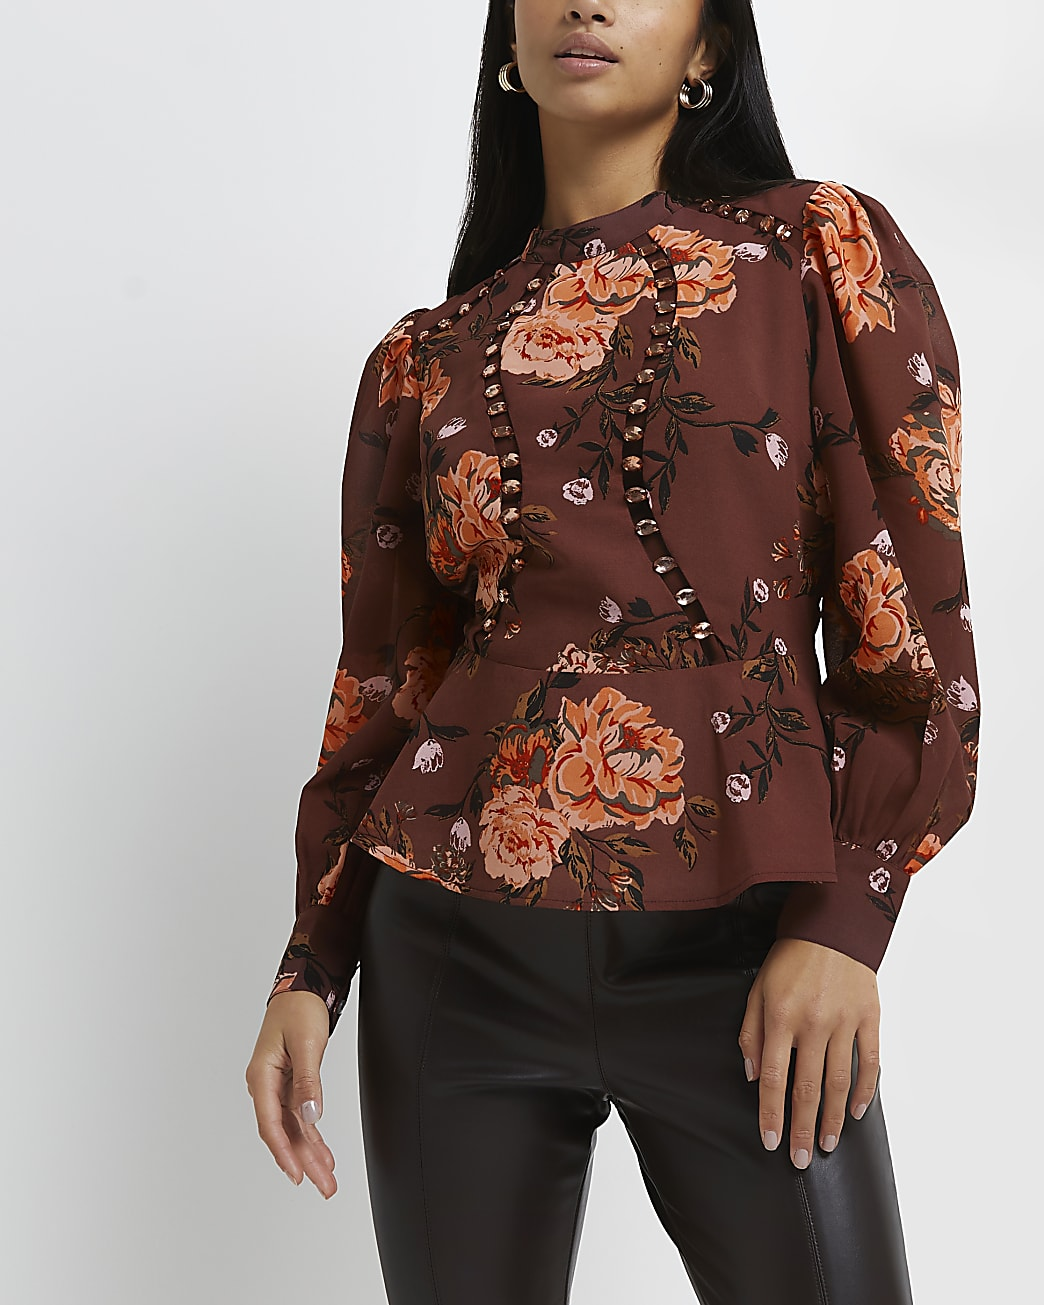 Petite red floral blouse